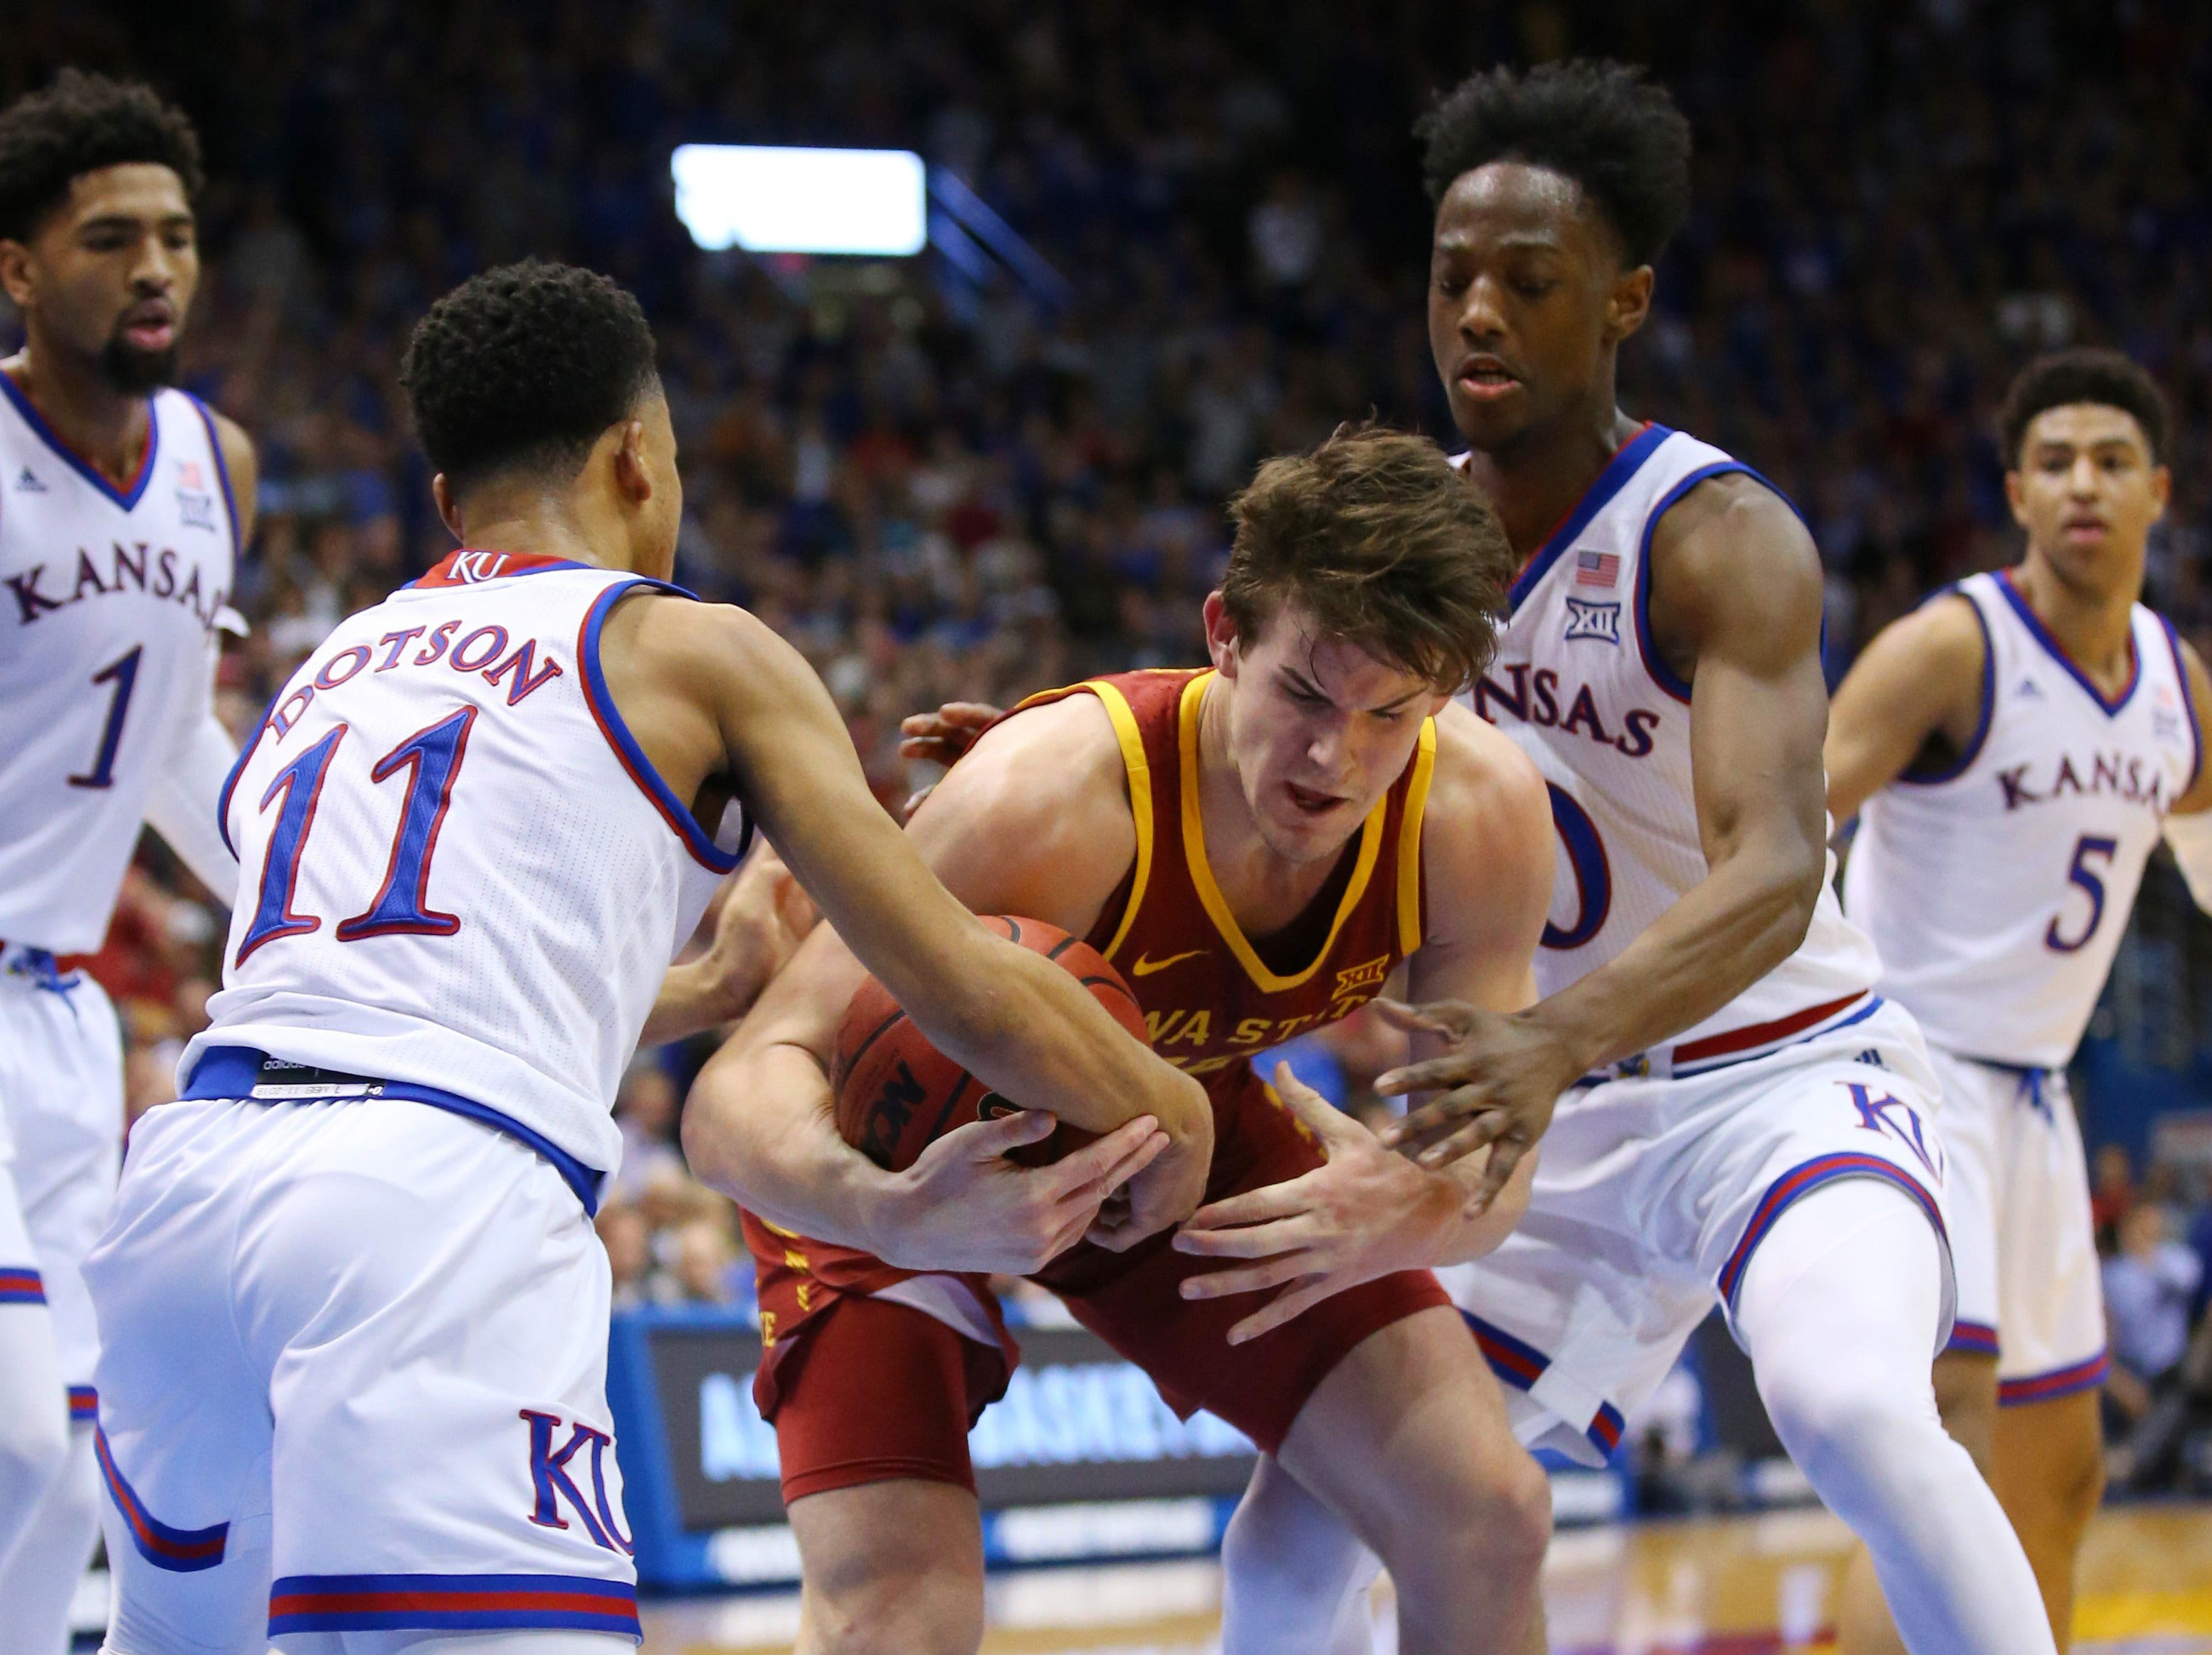 Iowa State Cyclones forward Michael Jacobson (12) fights for the ball with Kansas Jayhawks guard Devon Dotson (11) and guard Marcus Garrett (0) in the first half at Allen Fieldhouse.